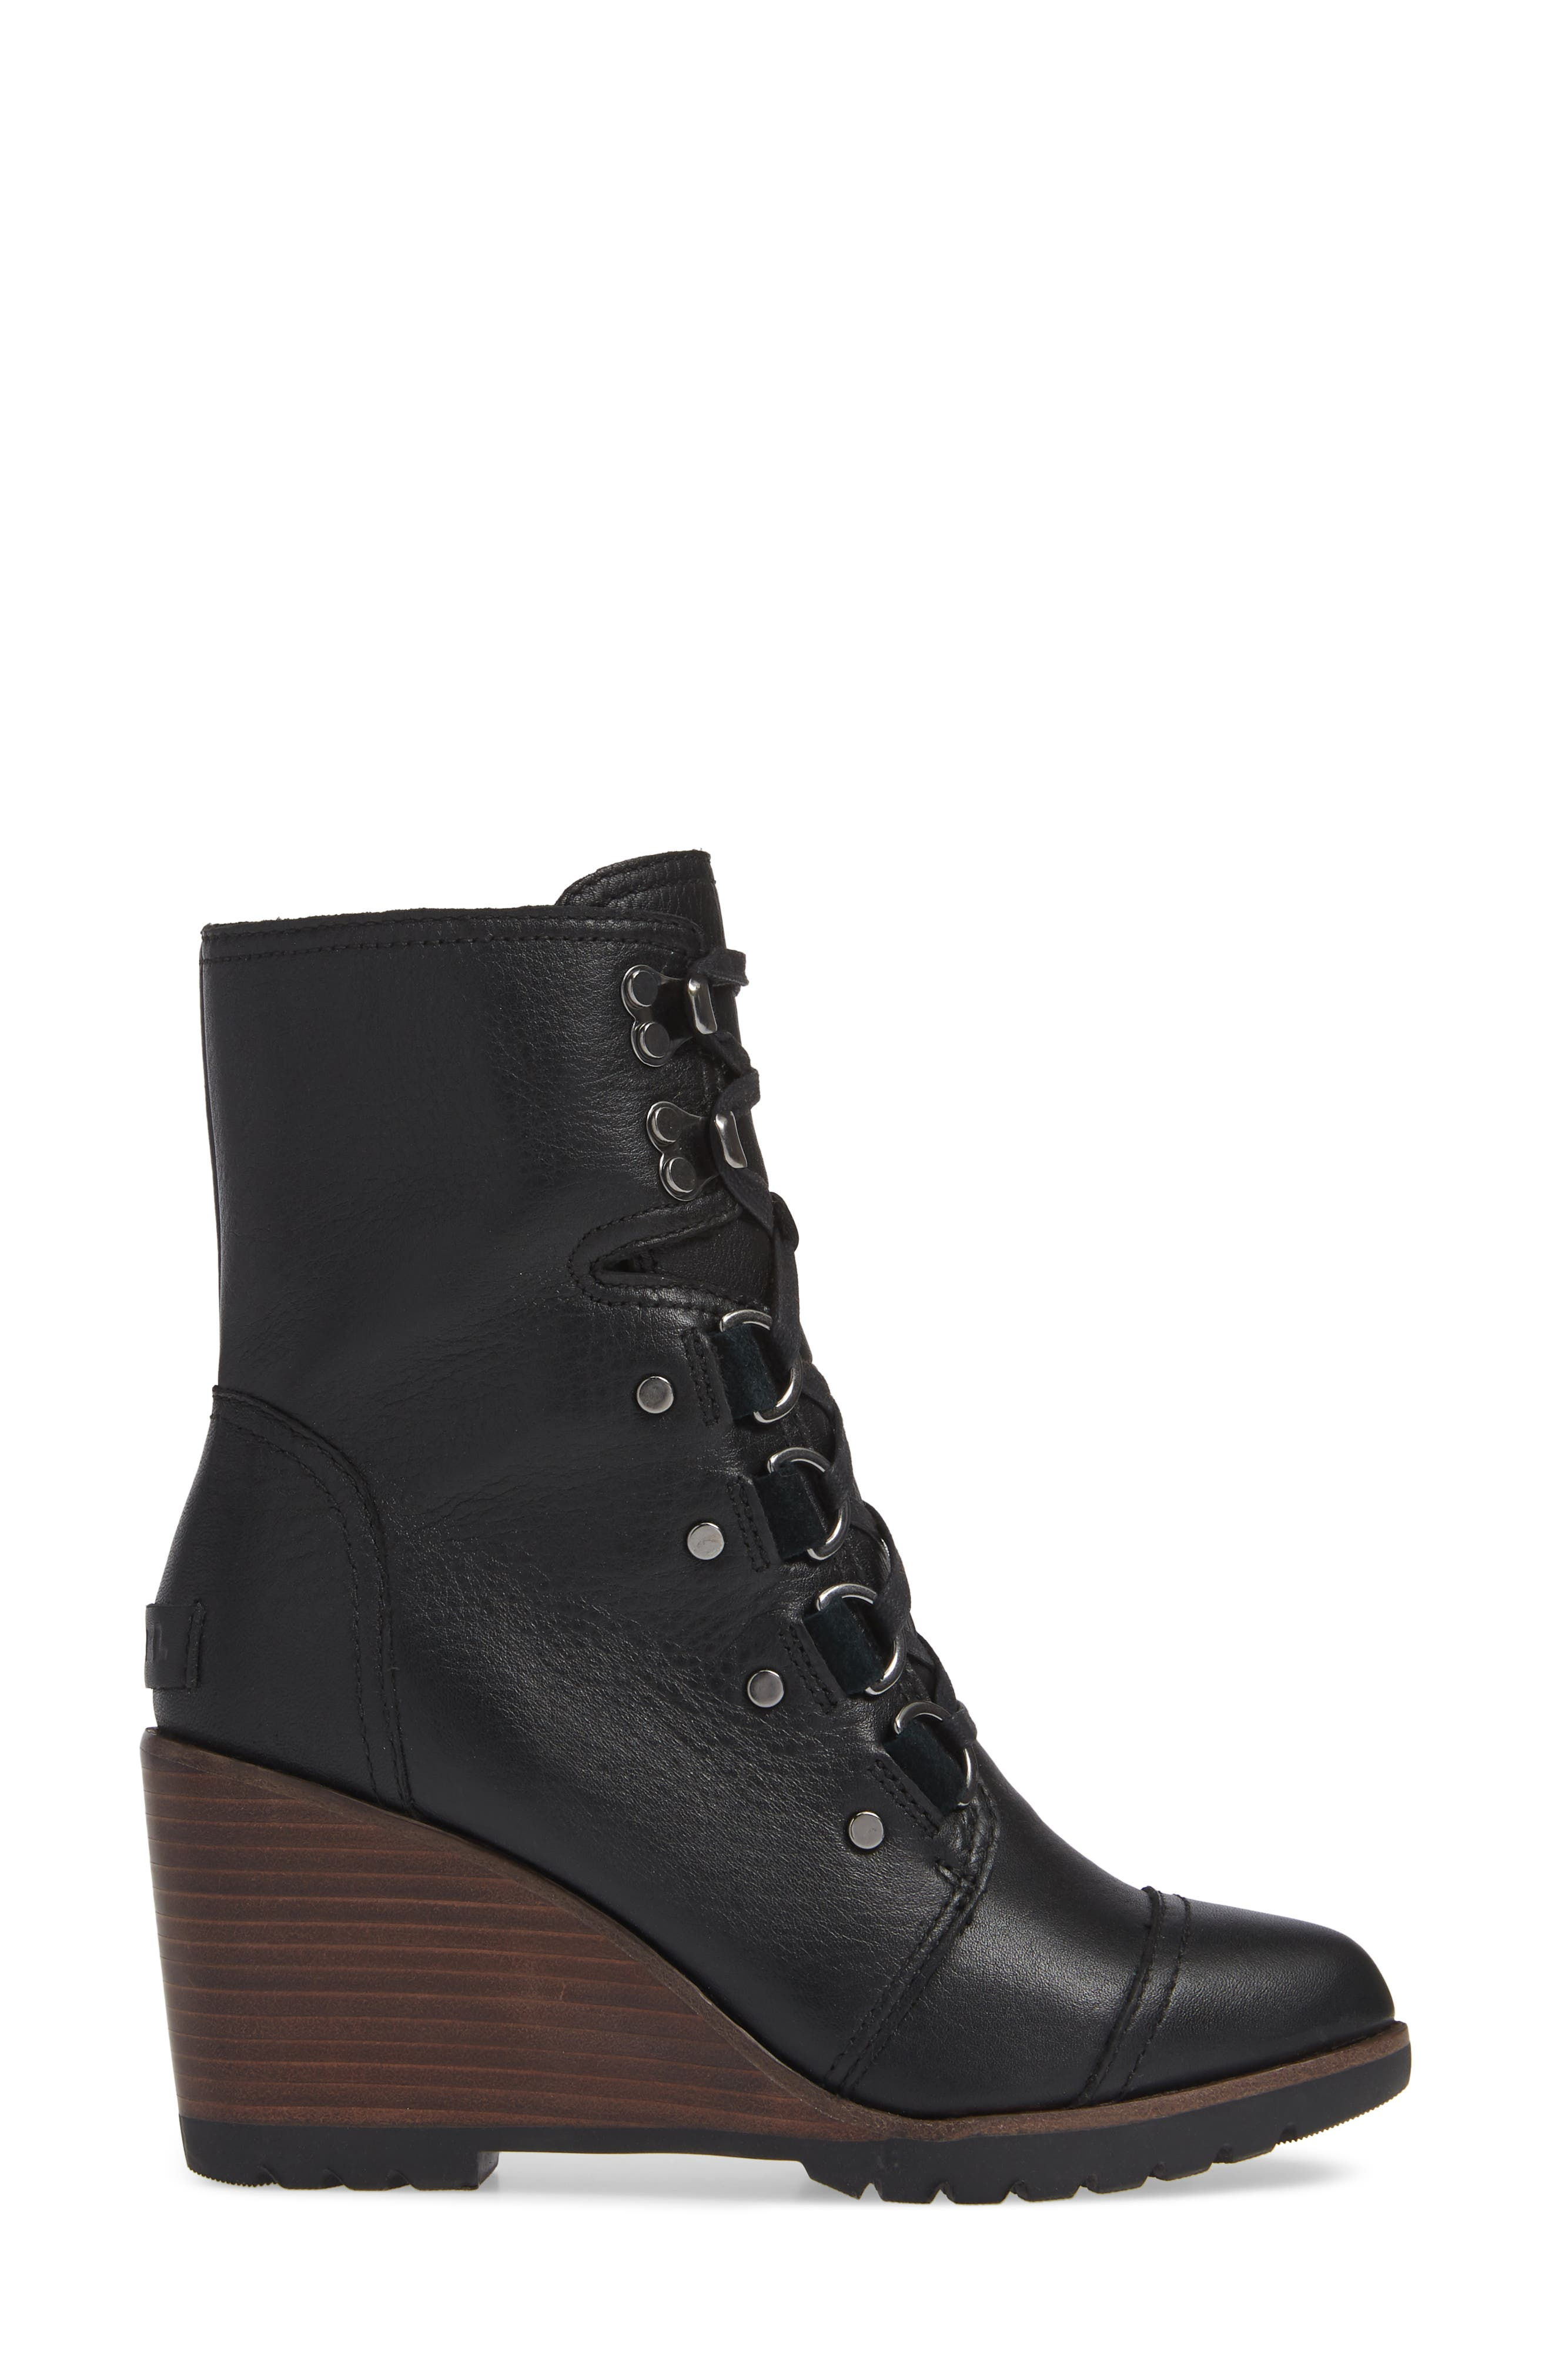 After Hours Lace-Up Waterproof Boot,                             Alternate thumbnail 3, color,                             010